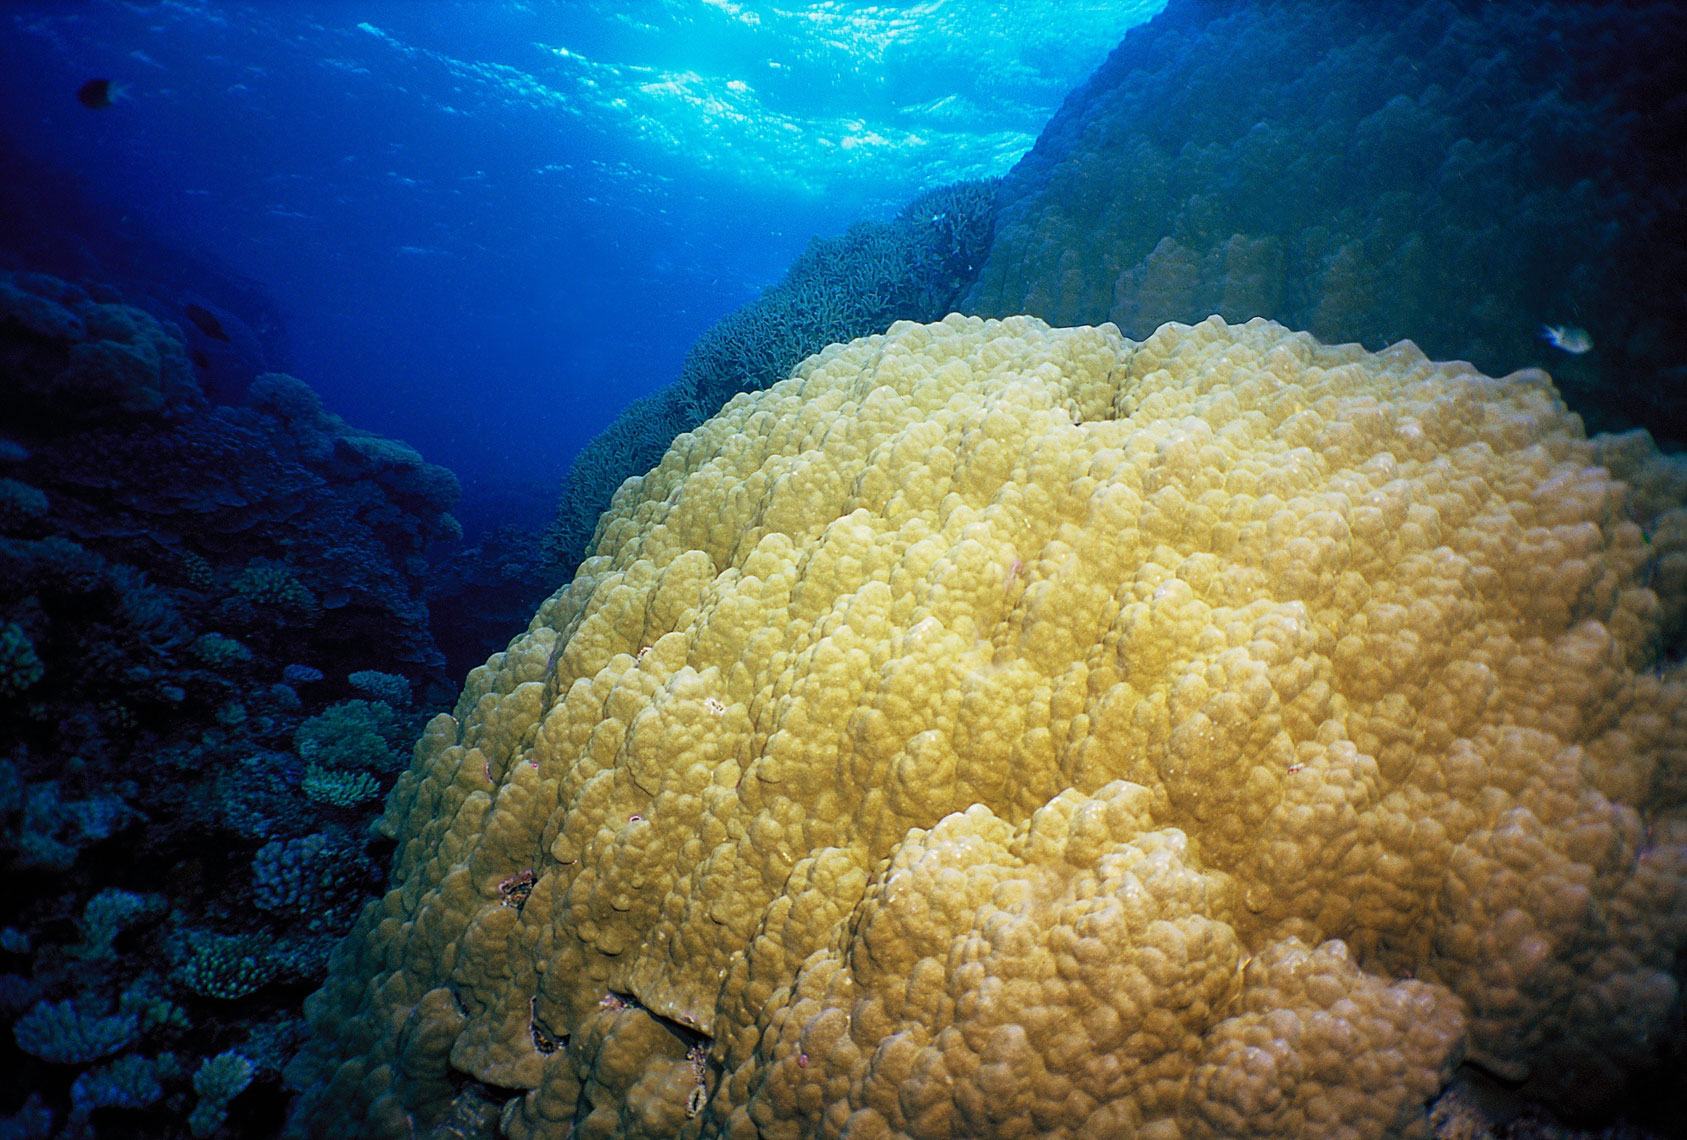 Coral head/Great Barrier Reef/underwater photography